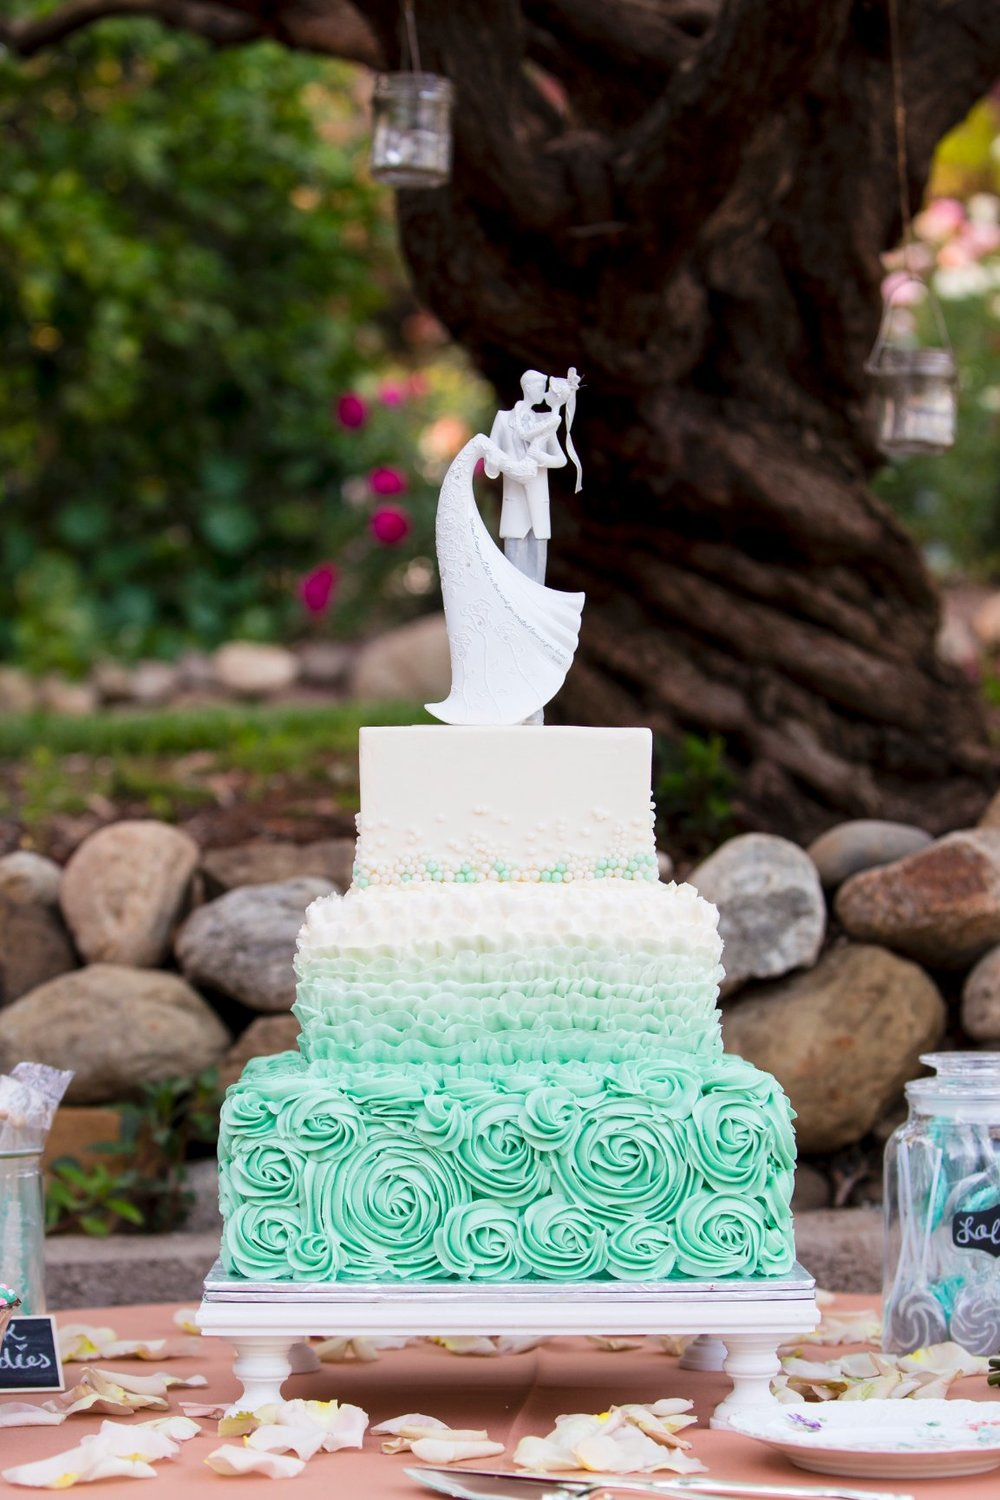 Love the intricate details on this cake. Matched the mint wedding colors perfectly, the fade from dark to light is particularly unique. Stunning! Cake by Sweet Arleens